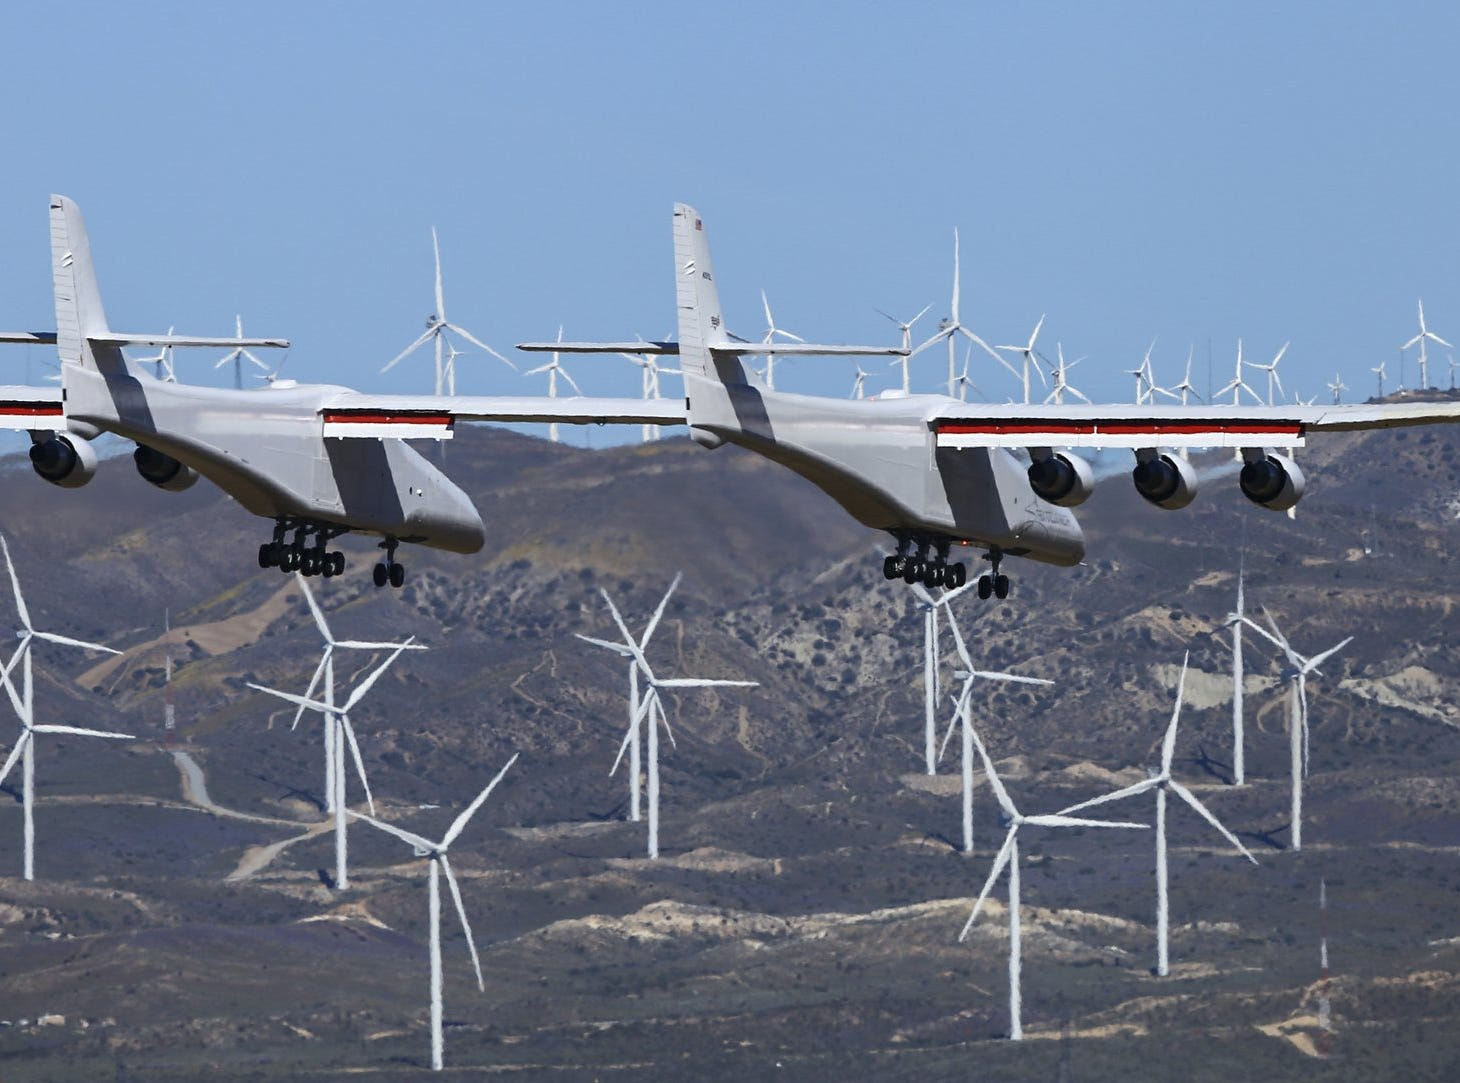 Stratolaunch, a giant six-engine aircraft with the world's longest wingspan, makes its historic first flight from the Mojave Air and Space Port in Mojave, Calif., Saturday, April 13, 2019. Founded by the late billionaire Paul G. Allen, Stratolaunch is vying to be a contender in the market for air-launching small satellites.